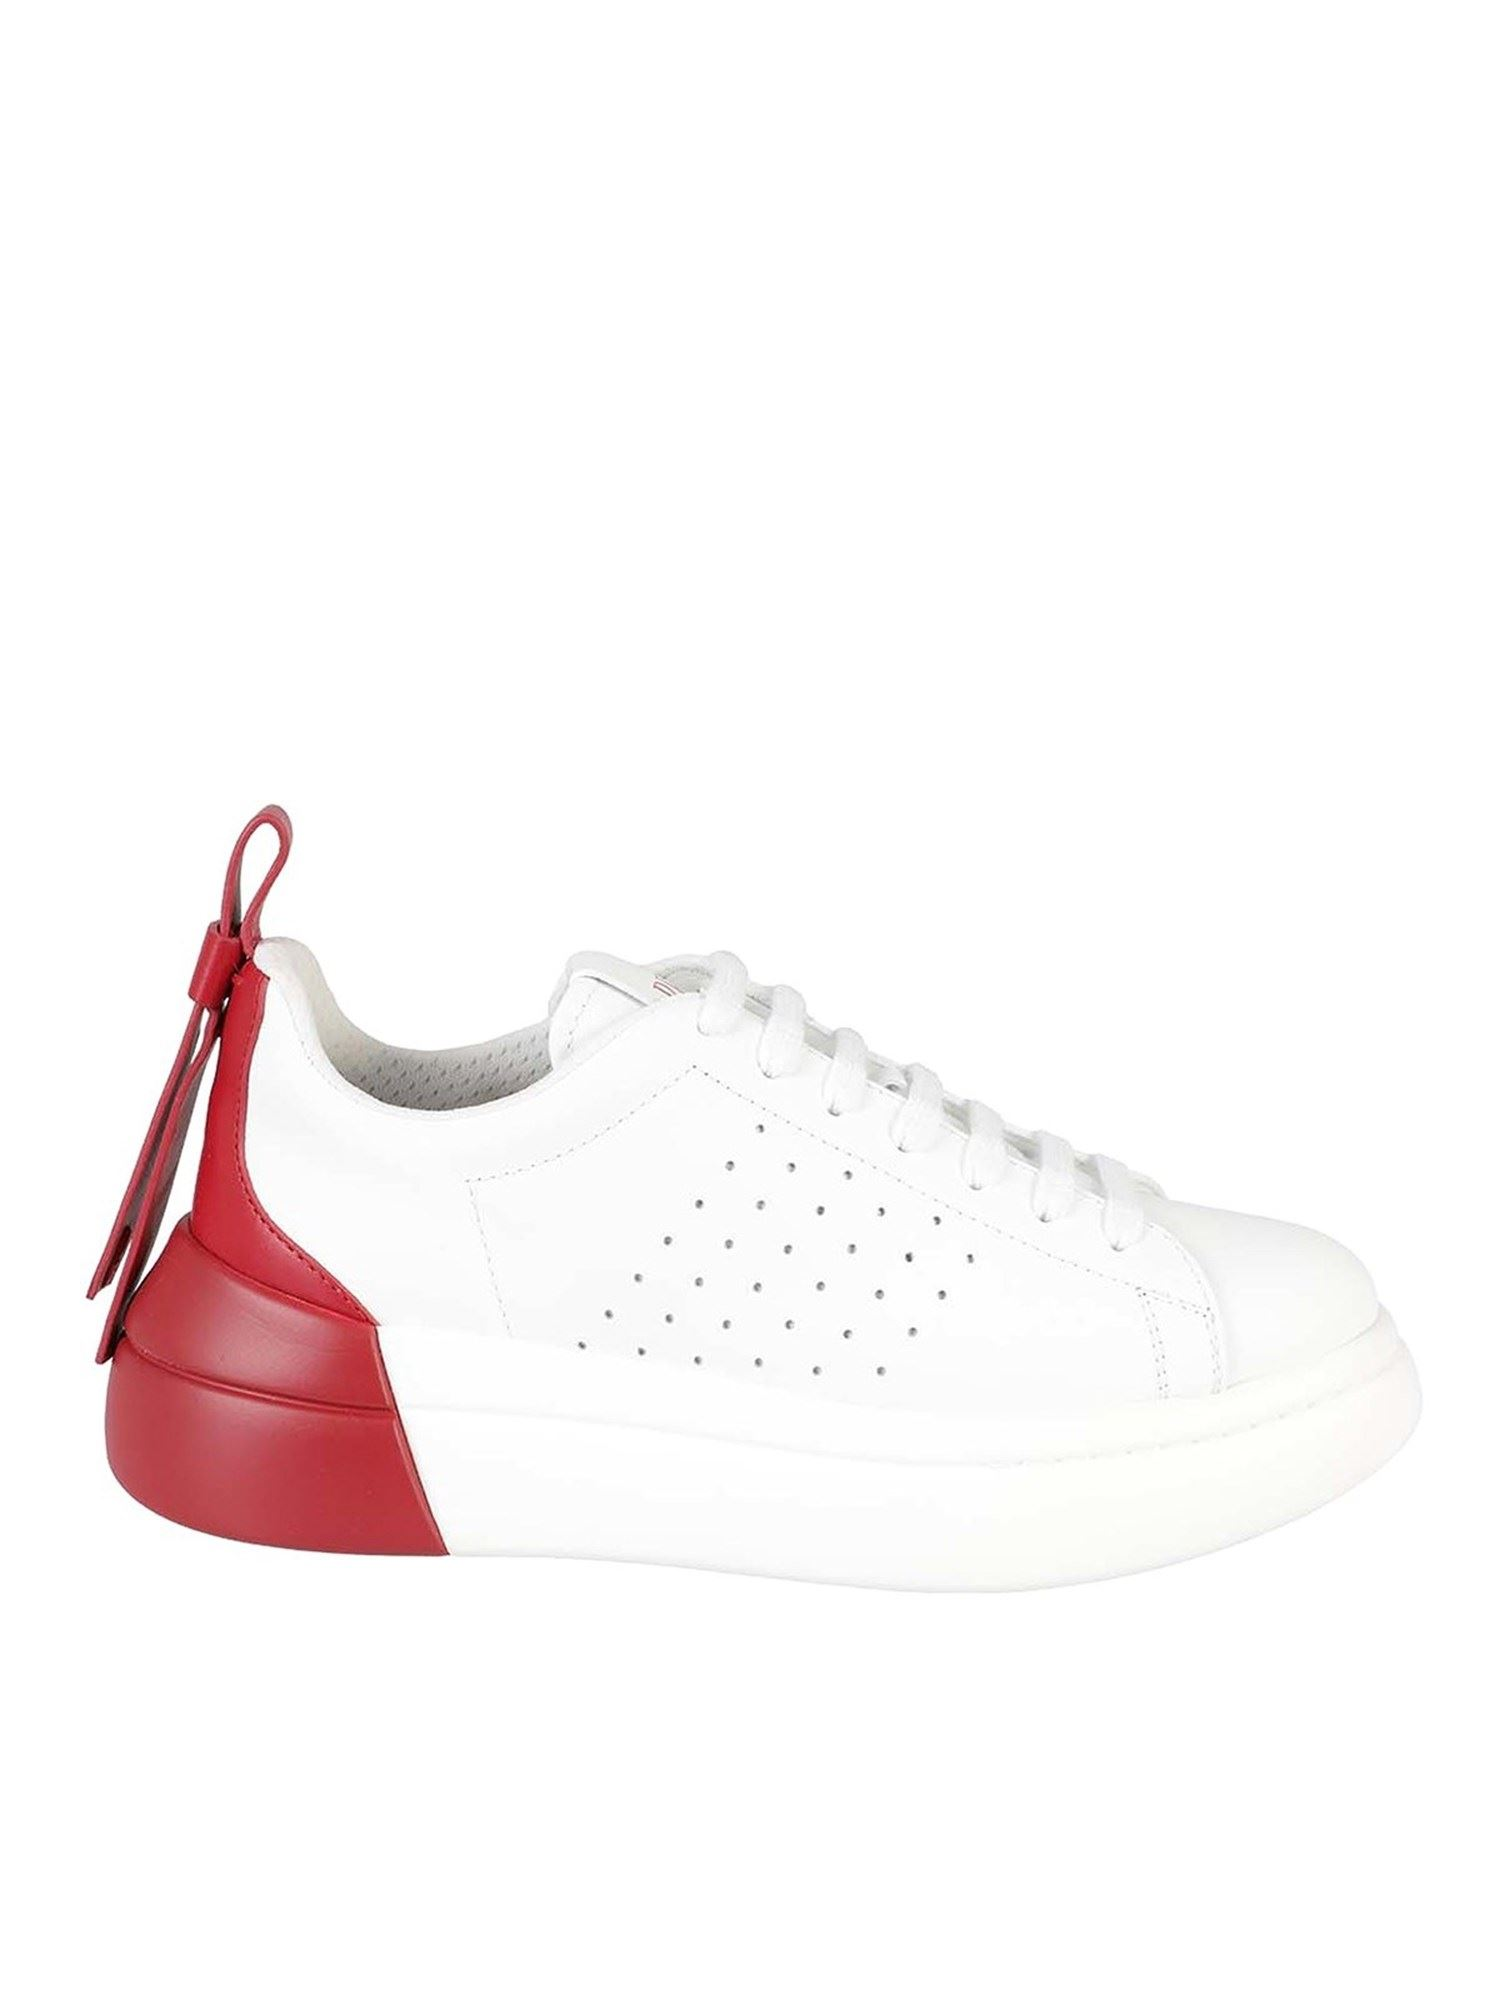 Red Valentino TWO-TONE LEATHER SNEAKERS IN WHITE AND RED